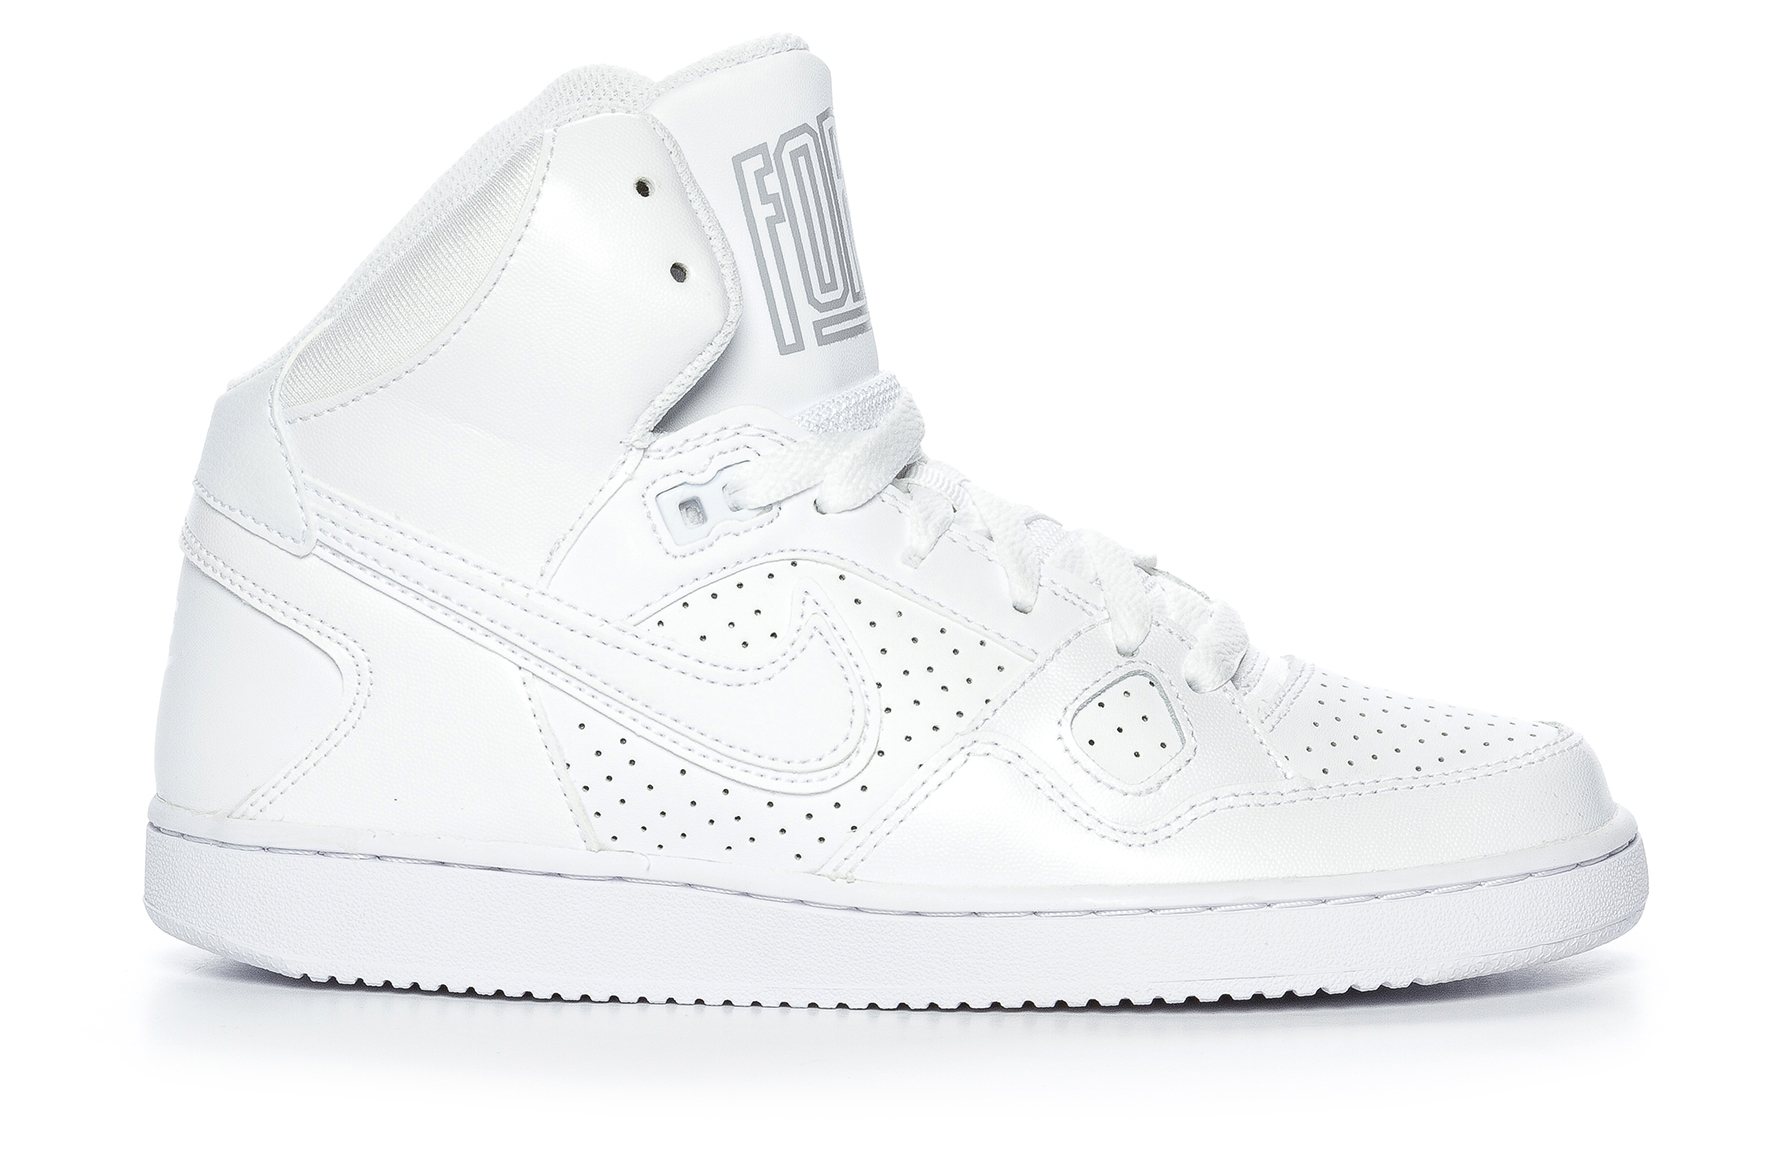 nike son of force mid dam